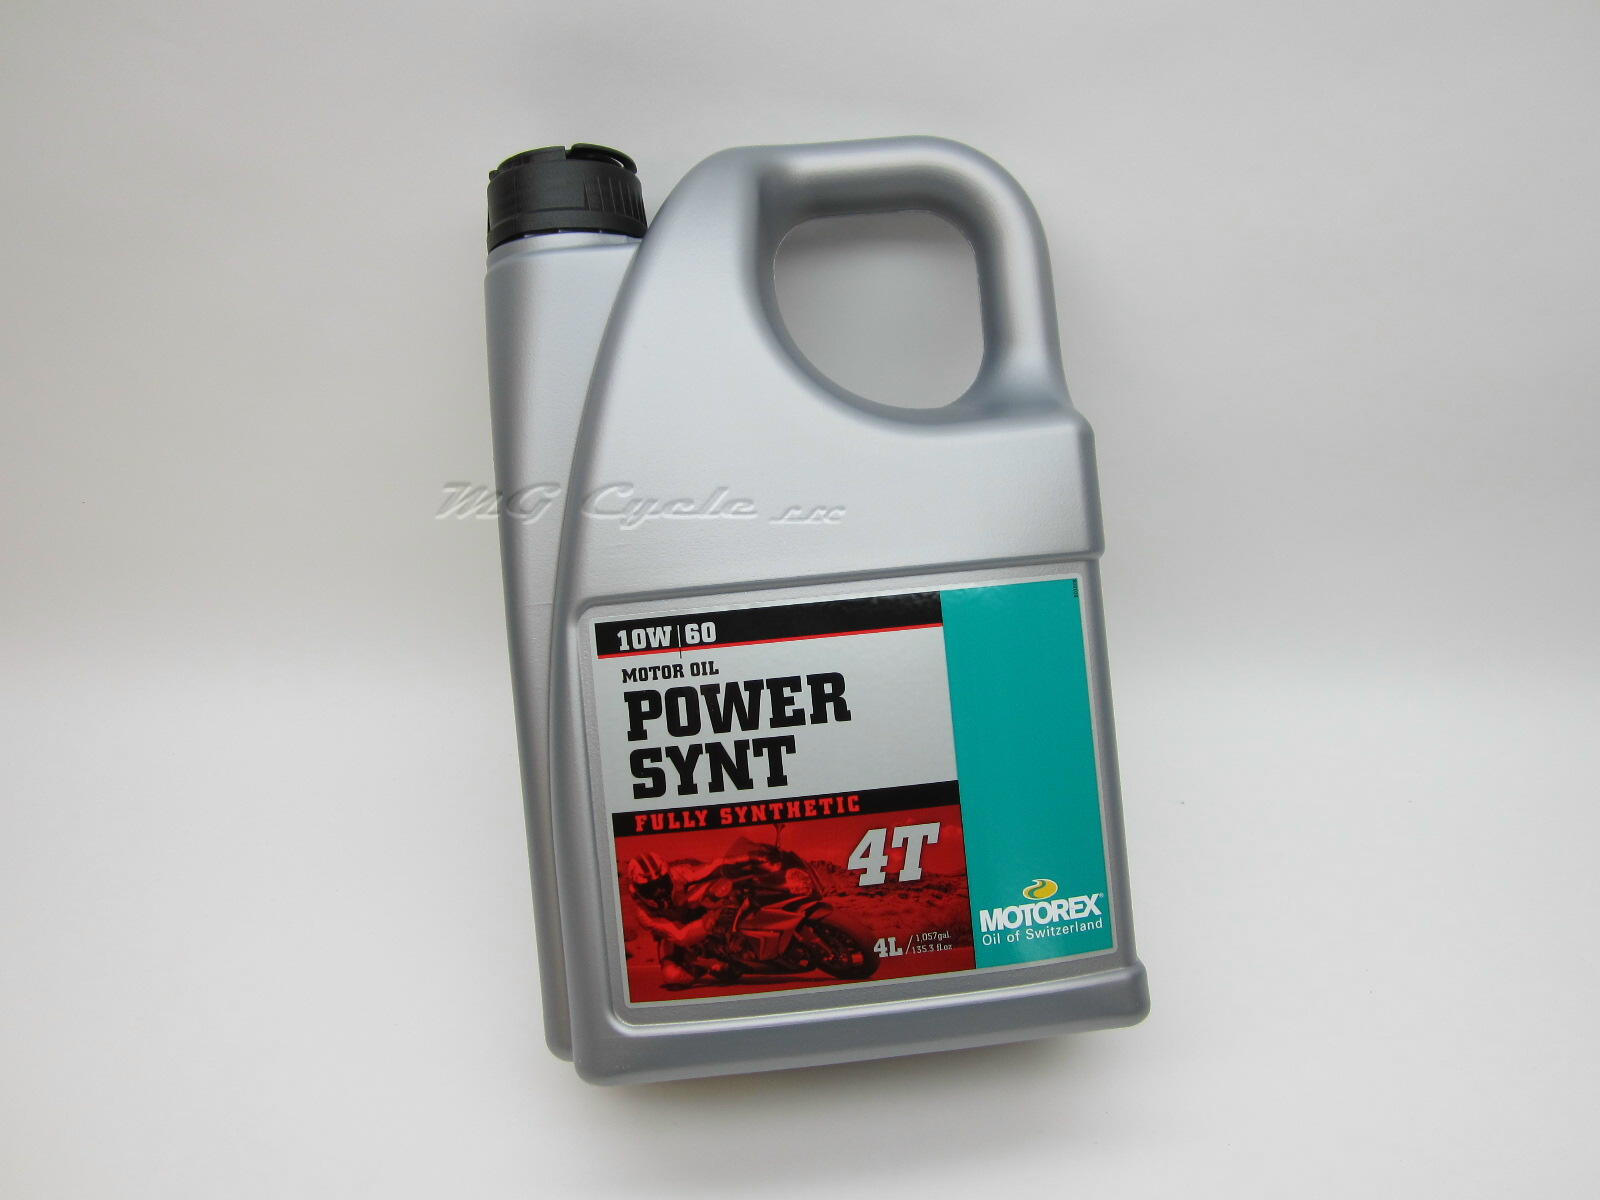 4 Liter Motorex POWER SYNT 4T 10W60 synthetic motor oil